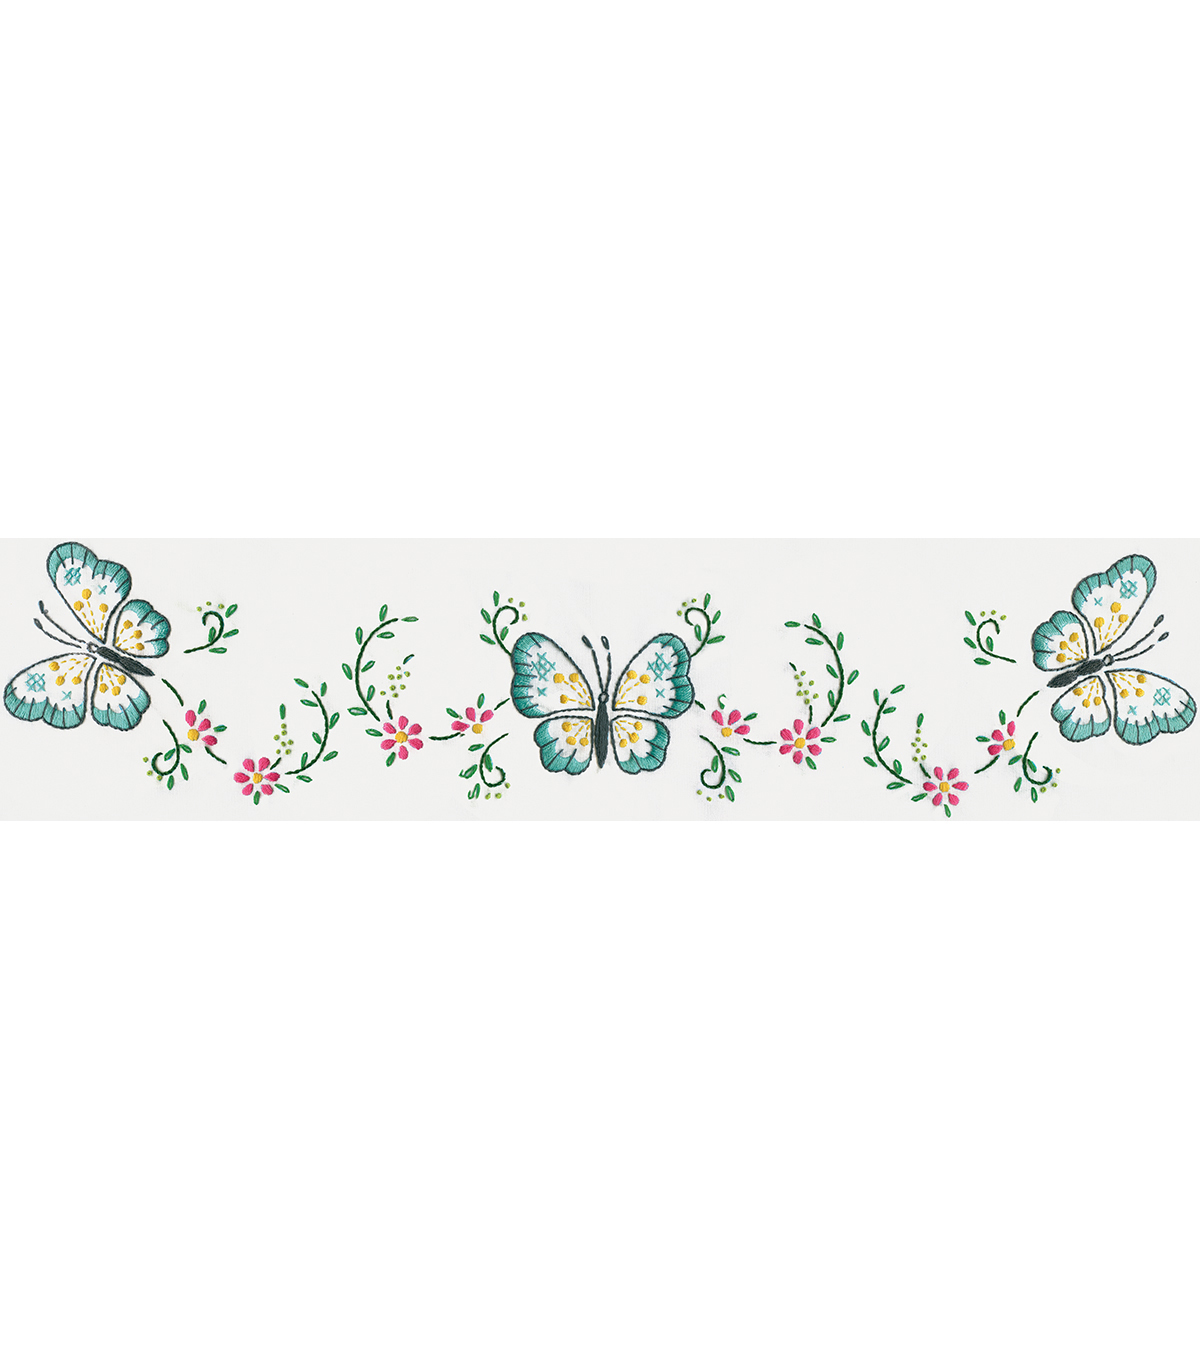 Stamped Pillowcase Pair For Embroidery 20\u0022X30\u0022-Aqua Butterfly